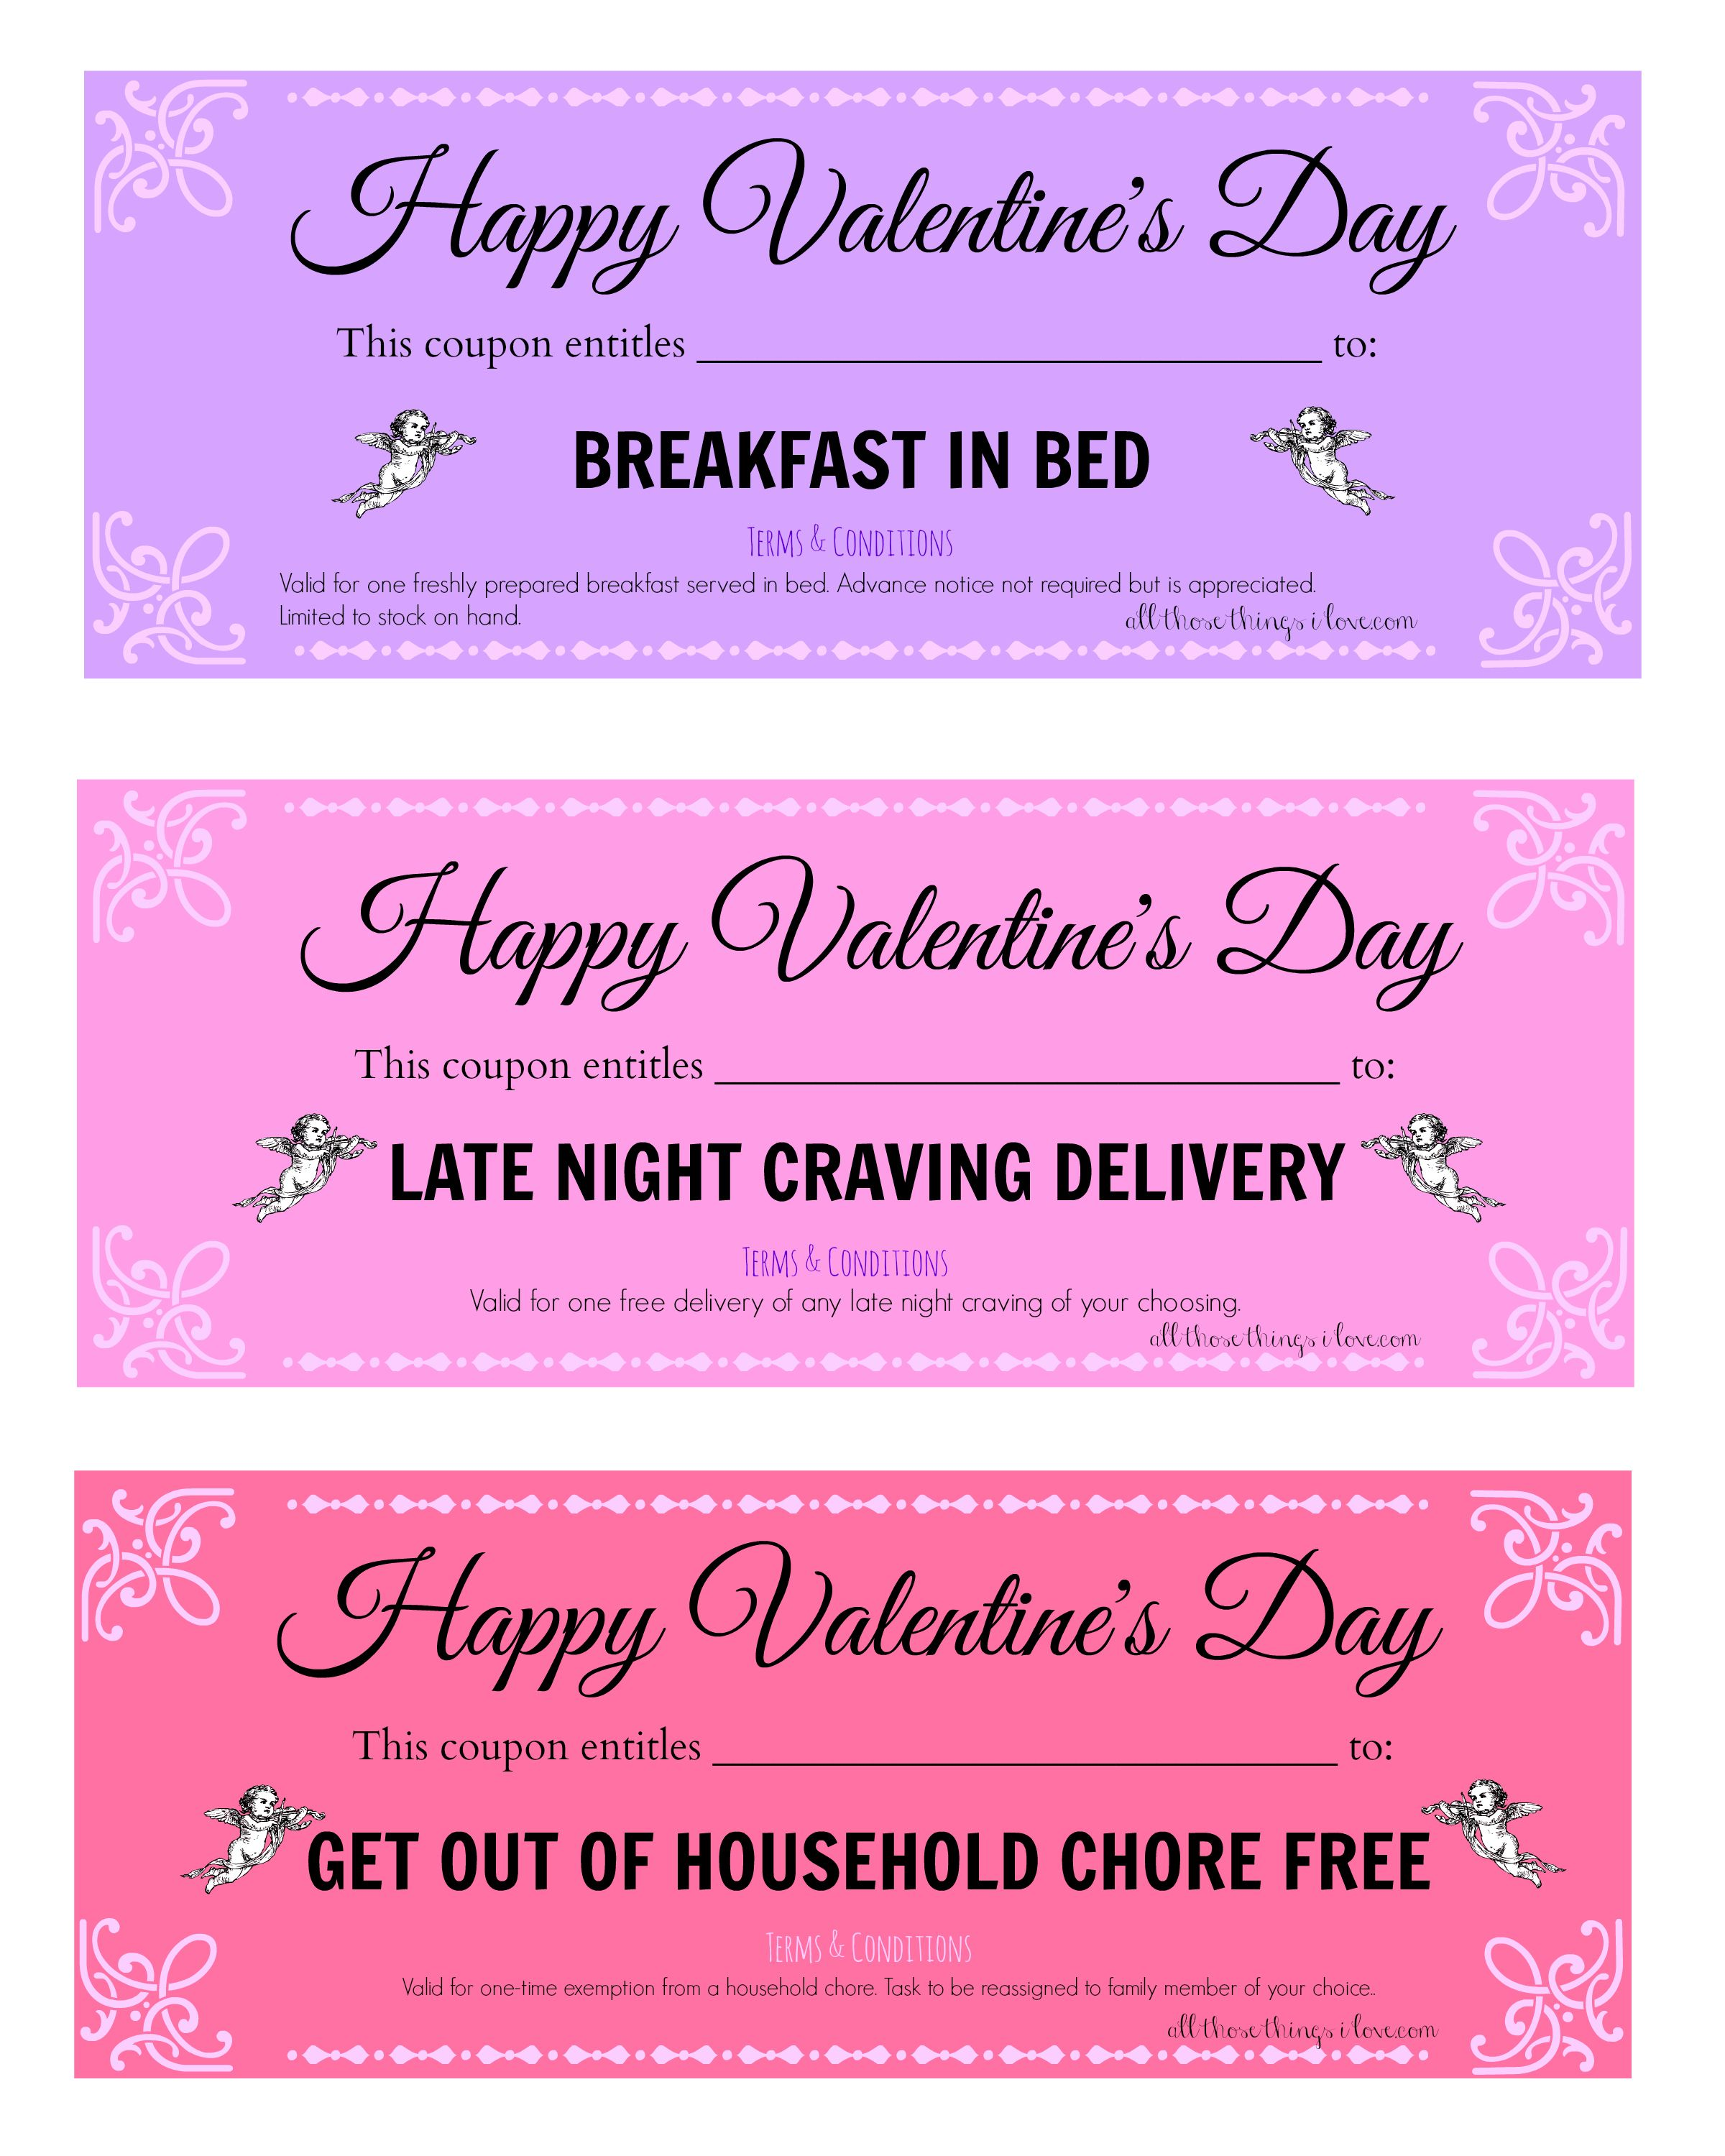 Free ValentineS Day Printable Love Coupons  Valentines Day